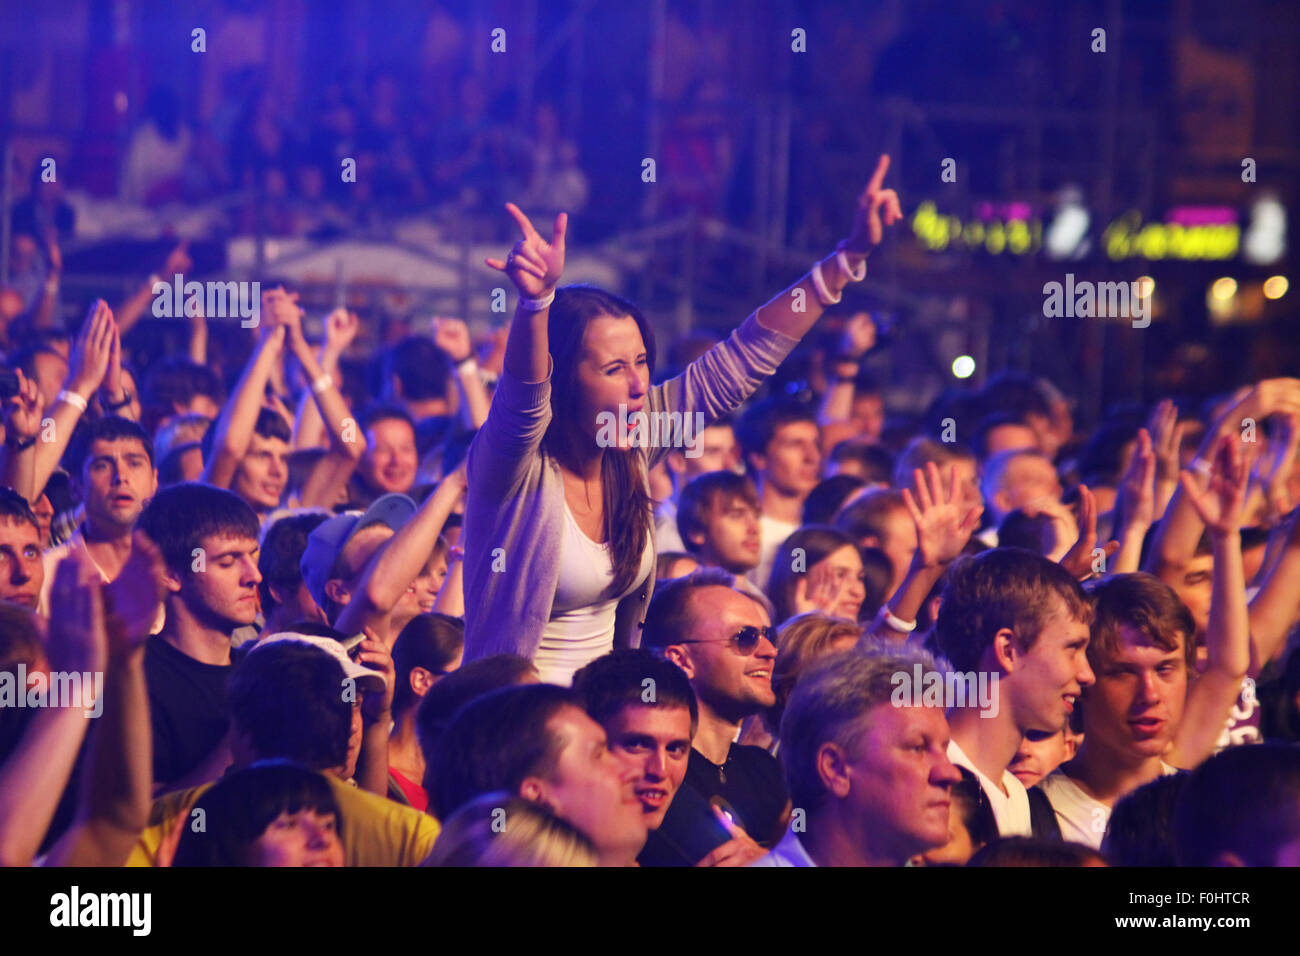 KYIV, UKRAINE - JUNE 30, 2012: People dance during Queen performs onstage at charity Anti-AIDS concert at the Independence - Stock Image